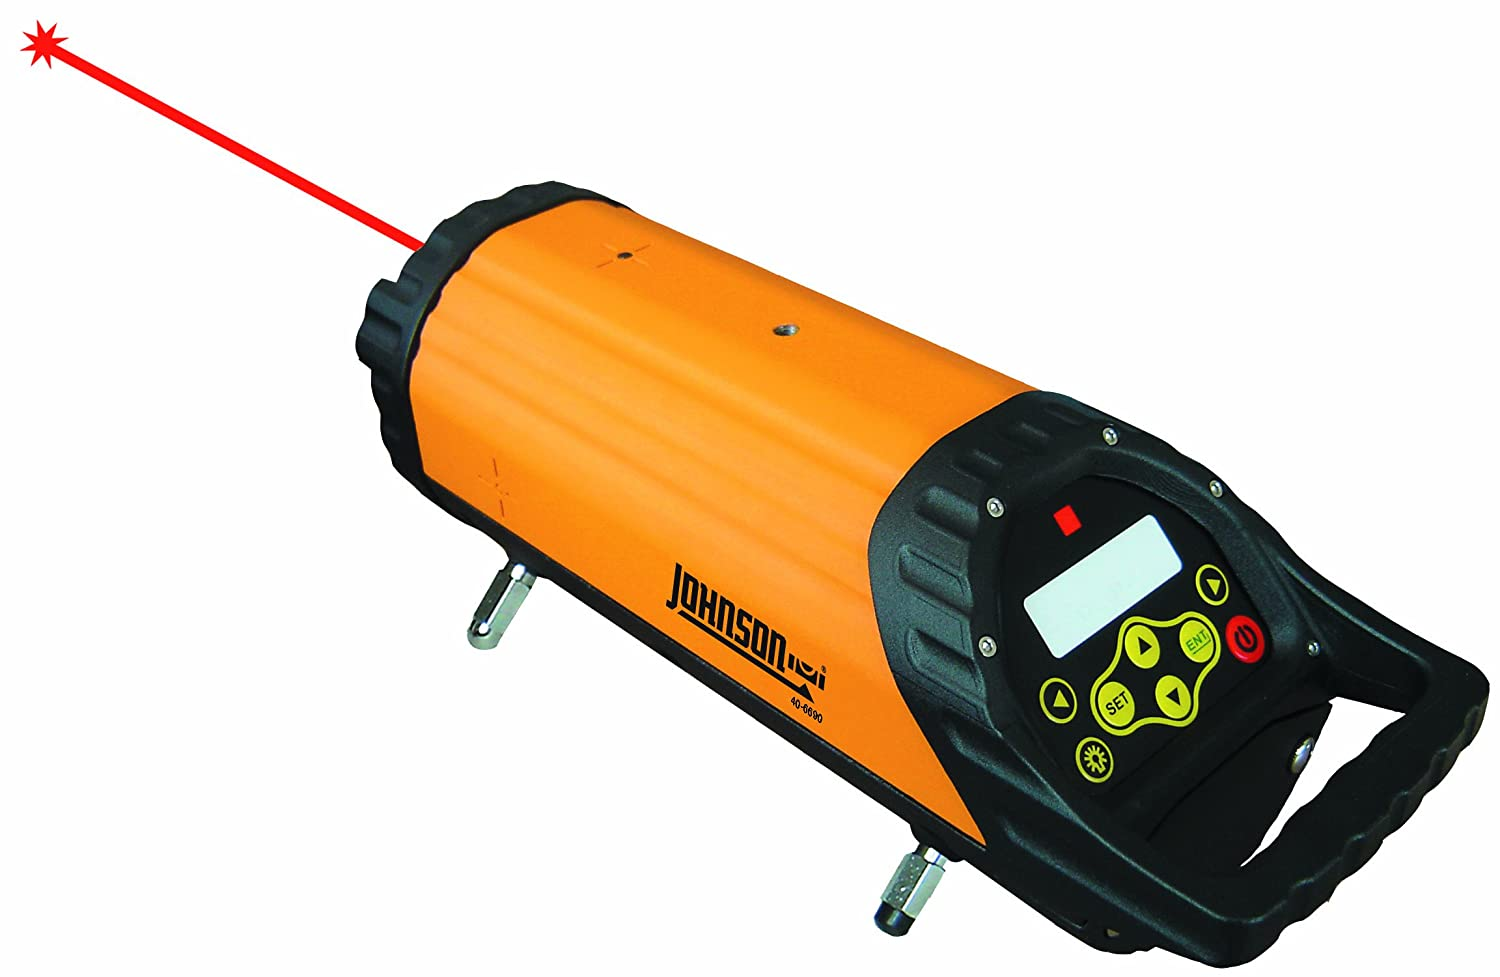 Johnson Level 40 6690 Pipe Laser Orange